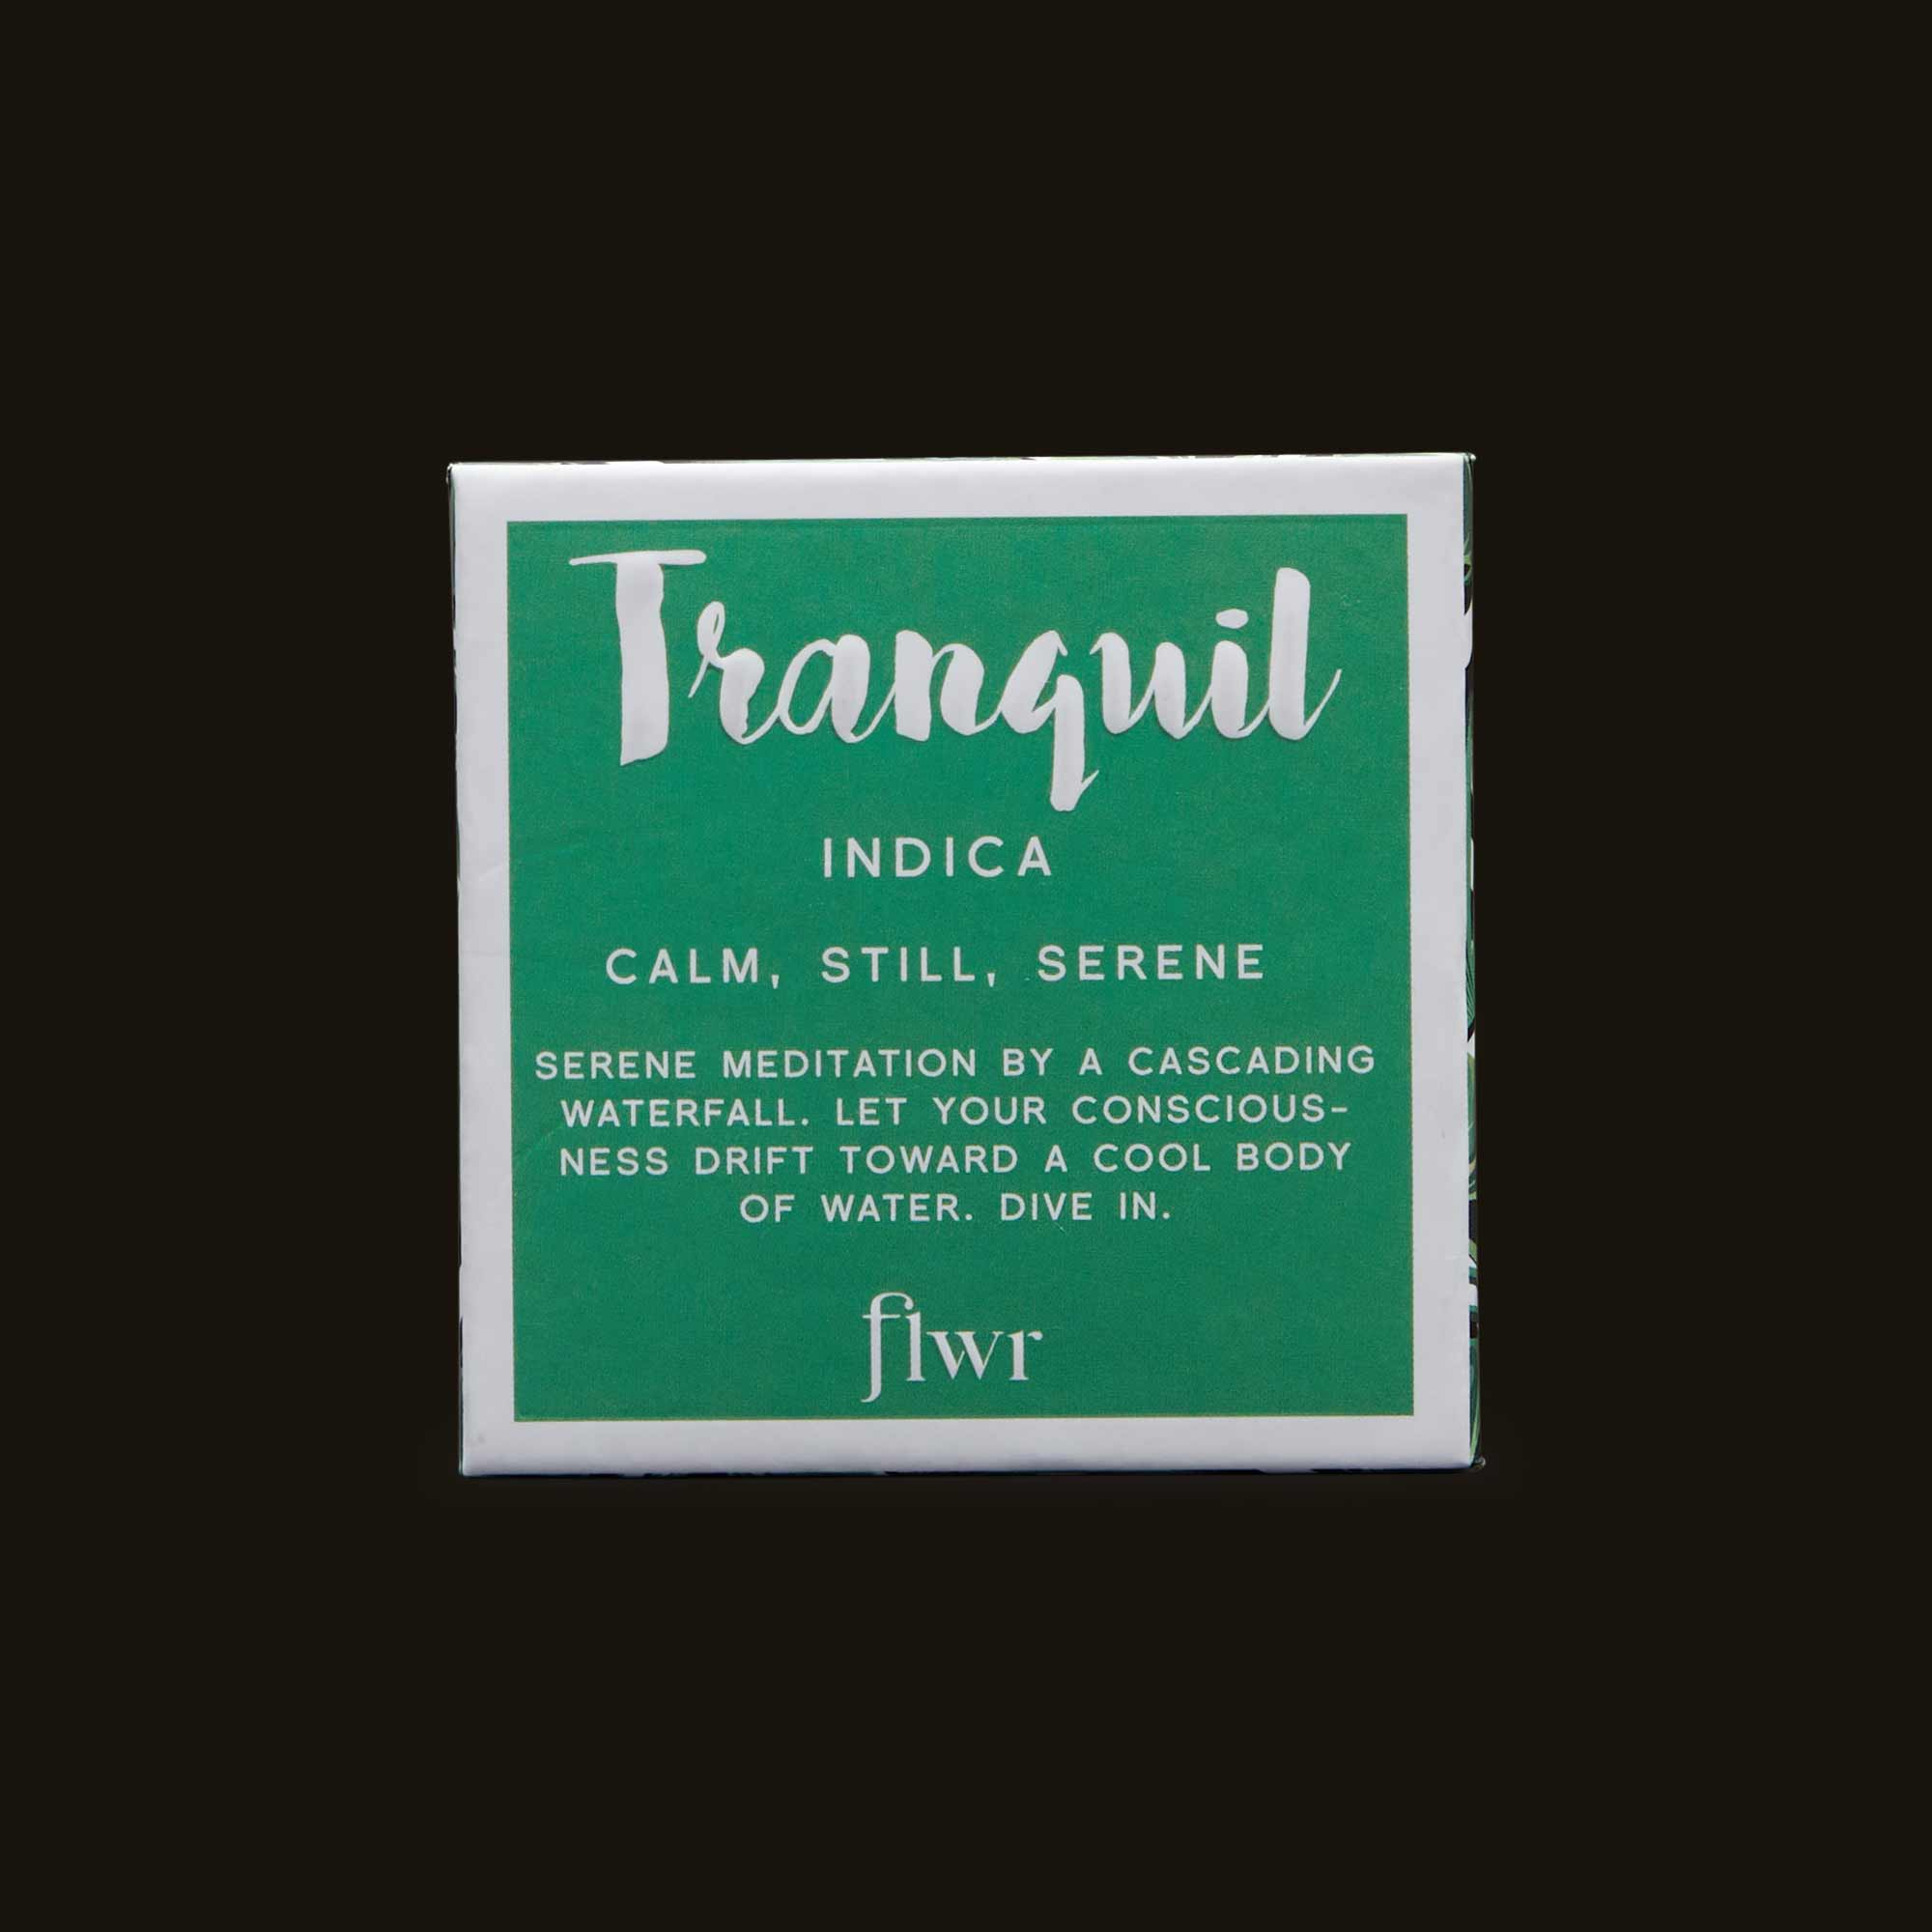 flwr Tranquil